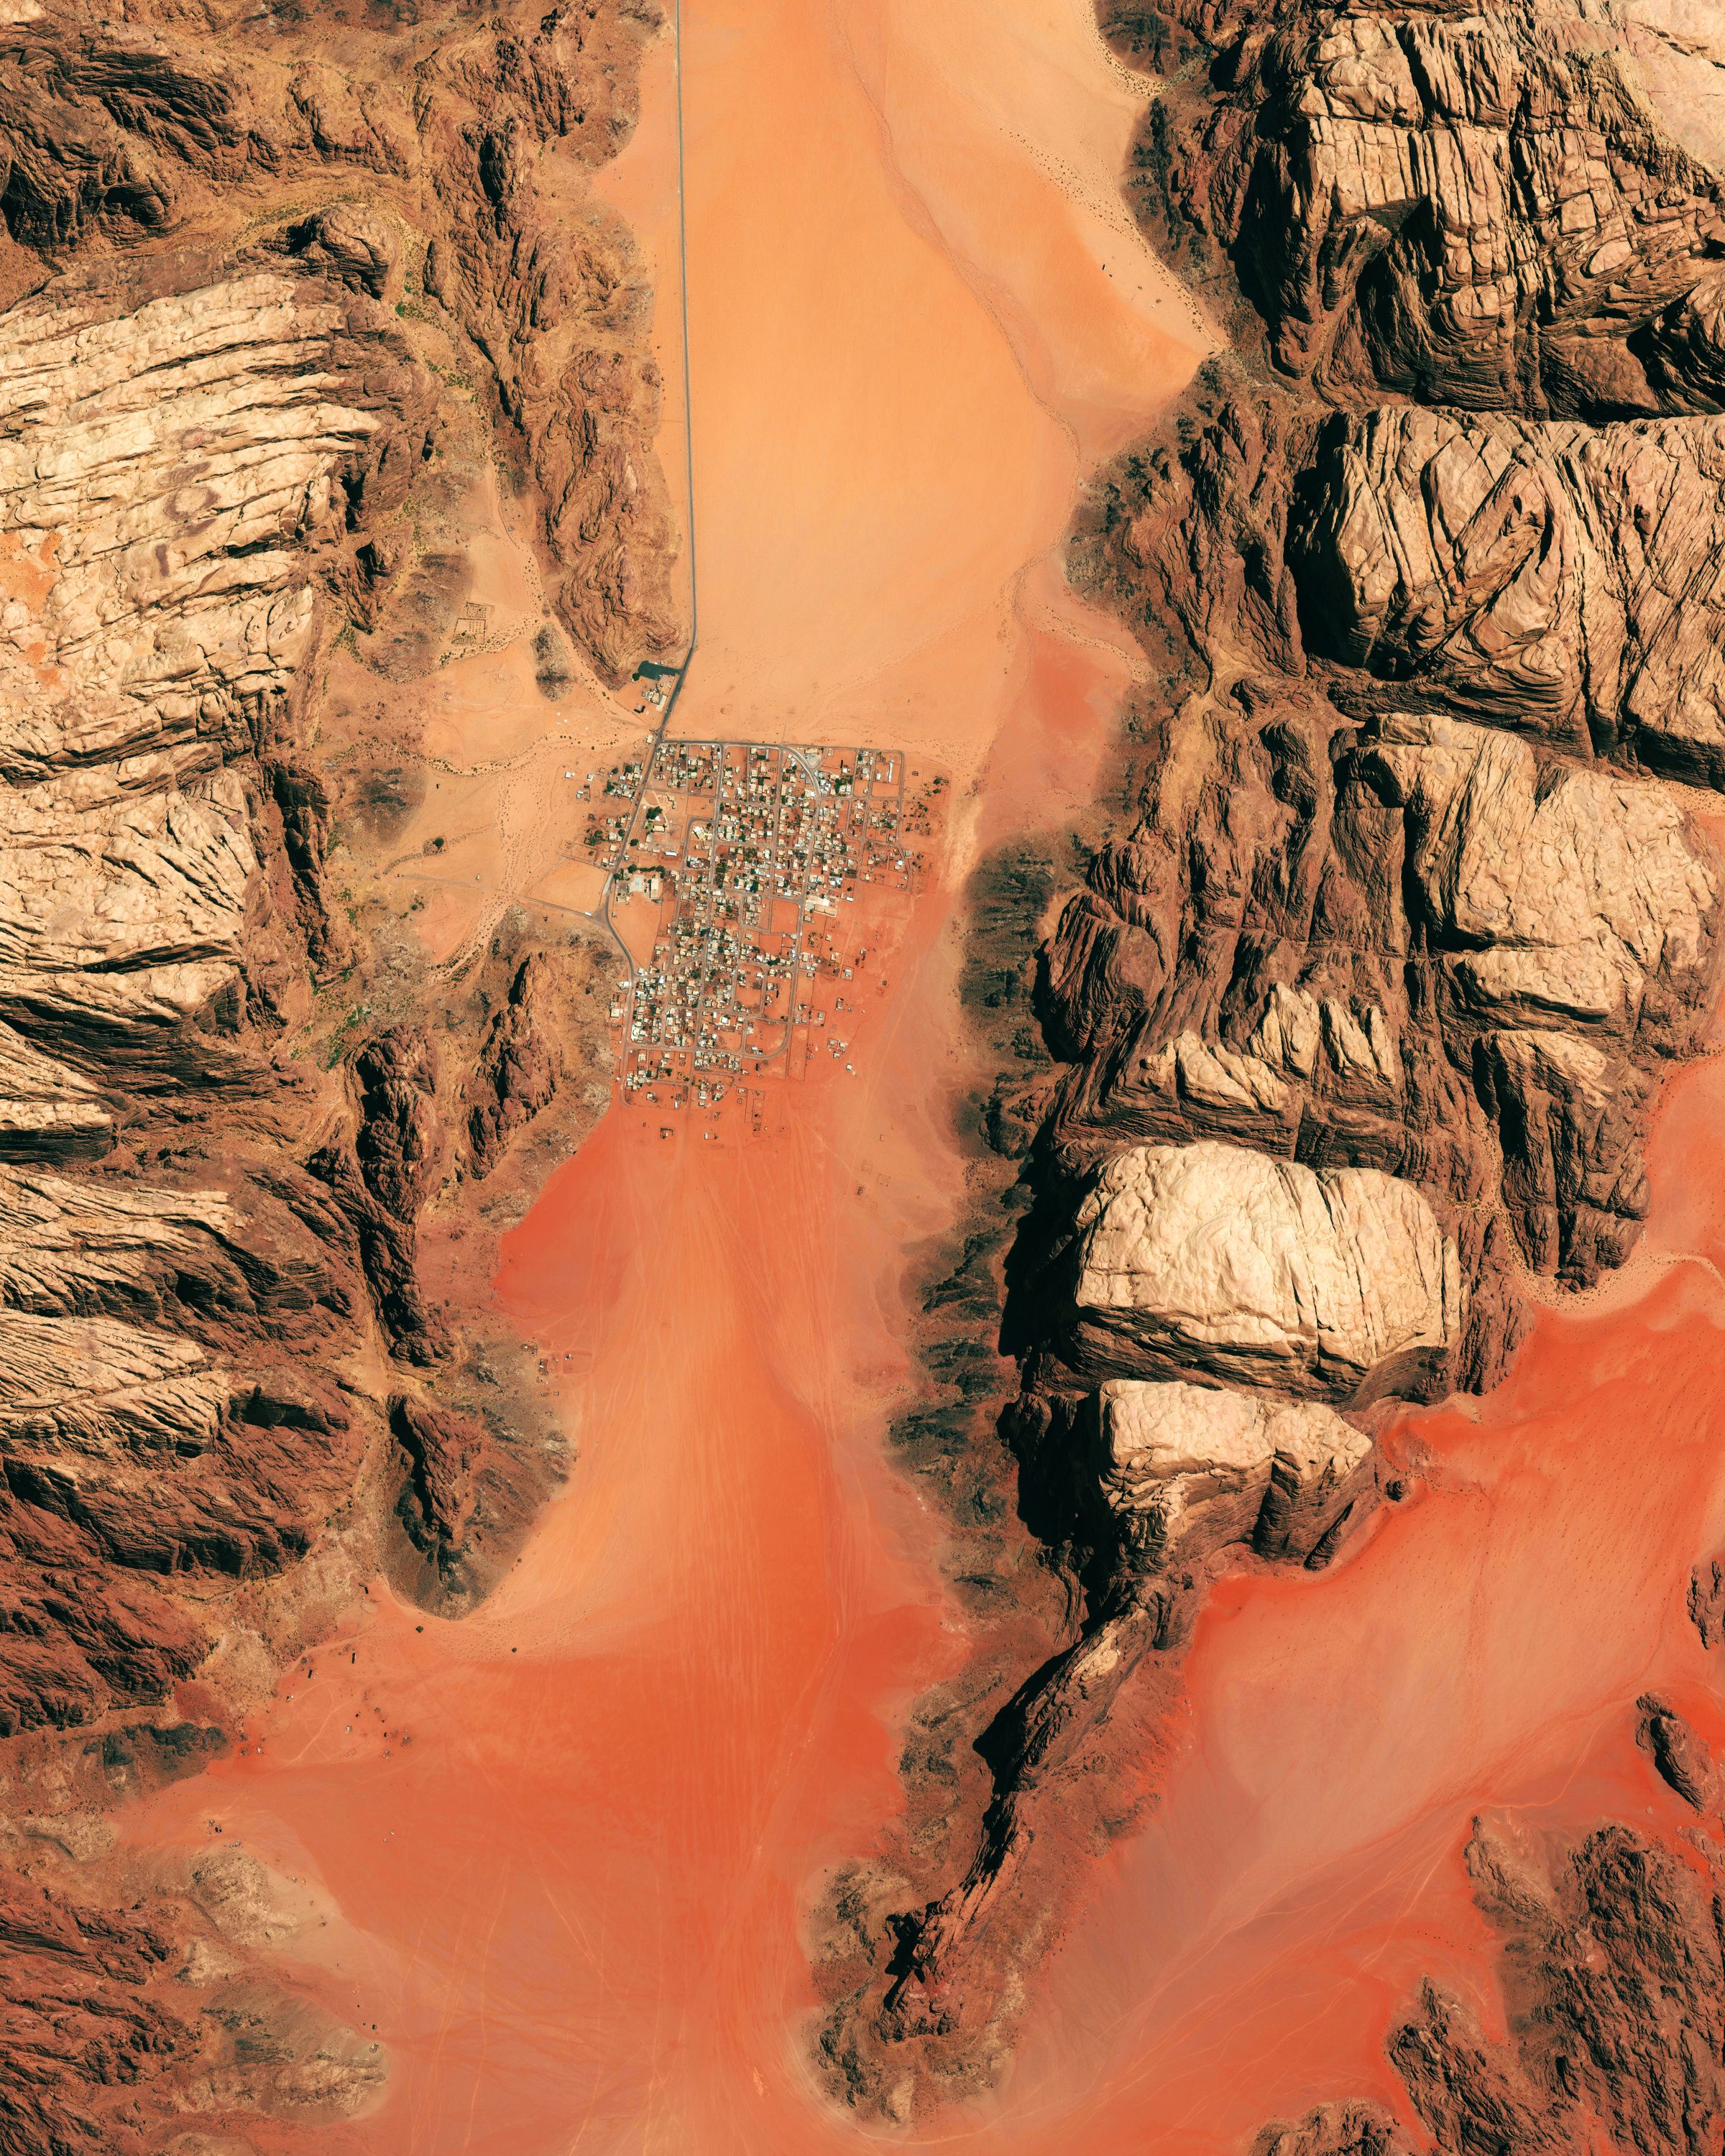 "This Overview of Wadi Rum, Jordan, is now 20% off in our Printshop! Just use the code ""HOLIDAY20"" to get your discount on any print order. Head over to our  Printshop  now to check out what's available! Wadi Rum is a village that has been populated by humans since prehistoric times (8th century BC). Early inhabitants left their mark in the form of rock paintings, which have been thoroughly analyzed by historians. The area has also served as a film set for movies such as The Martian and Star Wars Rogue One.  29°35'35.0""N, 35°25'12.0""E  Source imagery: DigitalGlobe"